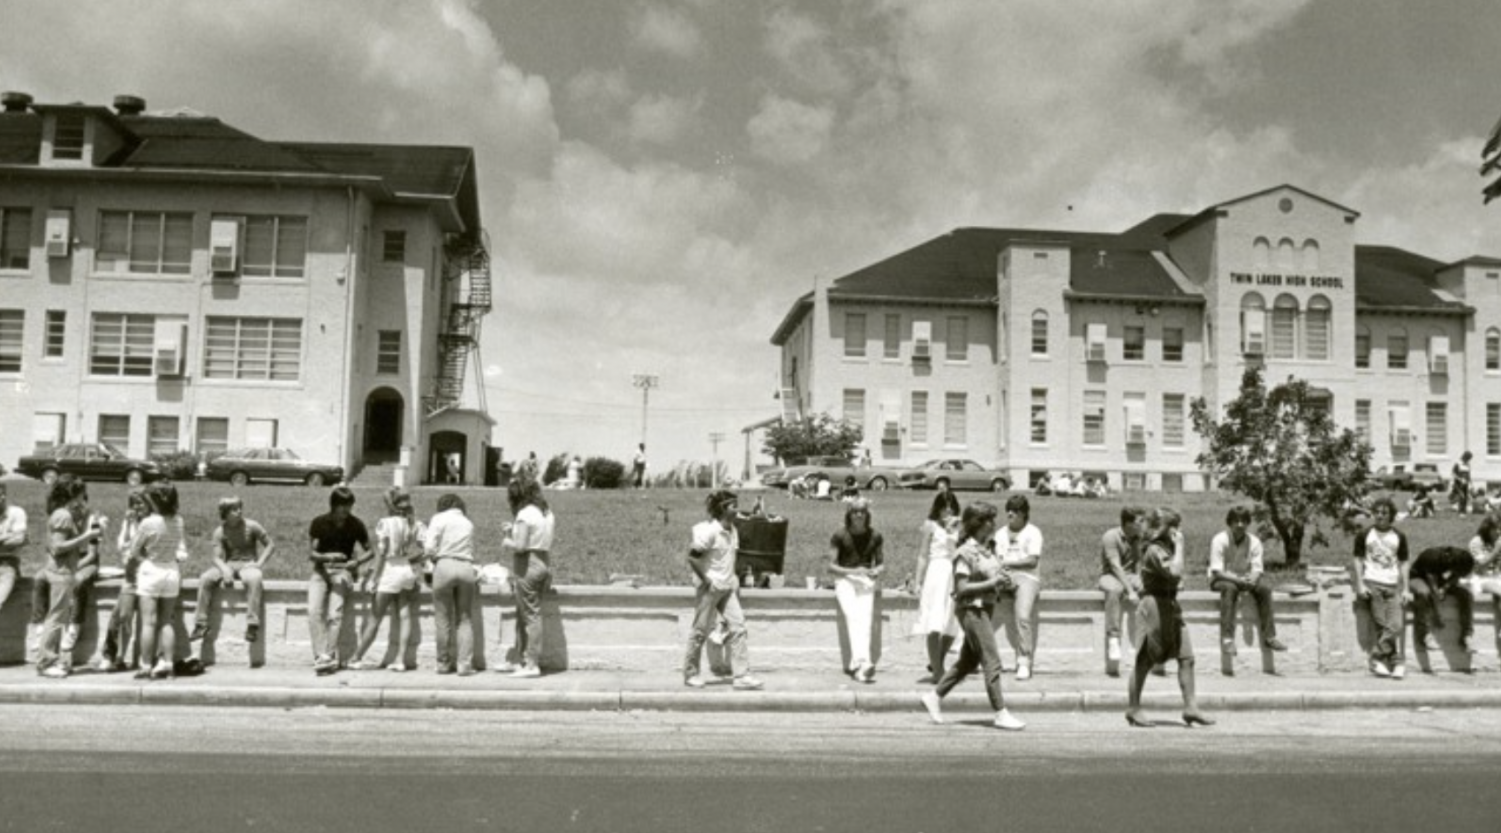 The last time that the Florida Gators and Florida State Seminoles went head to head during a year where both teams were unranked was 1987. In 1987, the campus where Dreyfoos School of the Arts now lies belonged to Twin Lakes High School. Here, students of Twin Lakes enjoy their lunch around campus three years before the historic game. The sidewalk in front of the school was one of the most popular social spots for students.